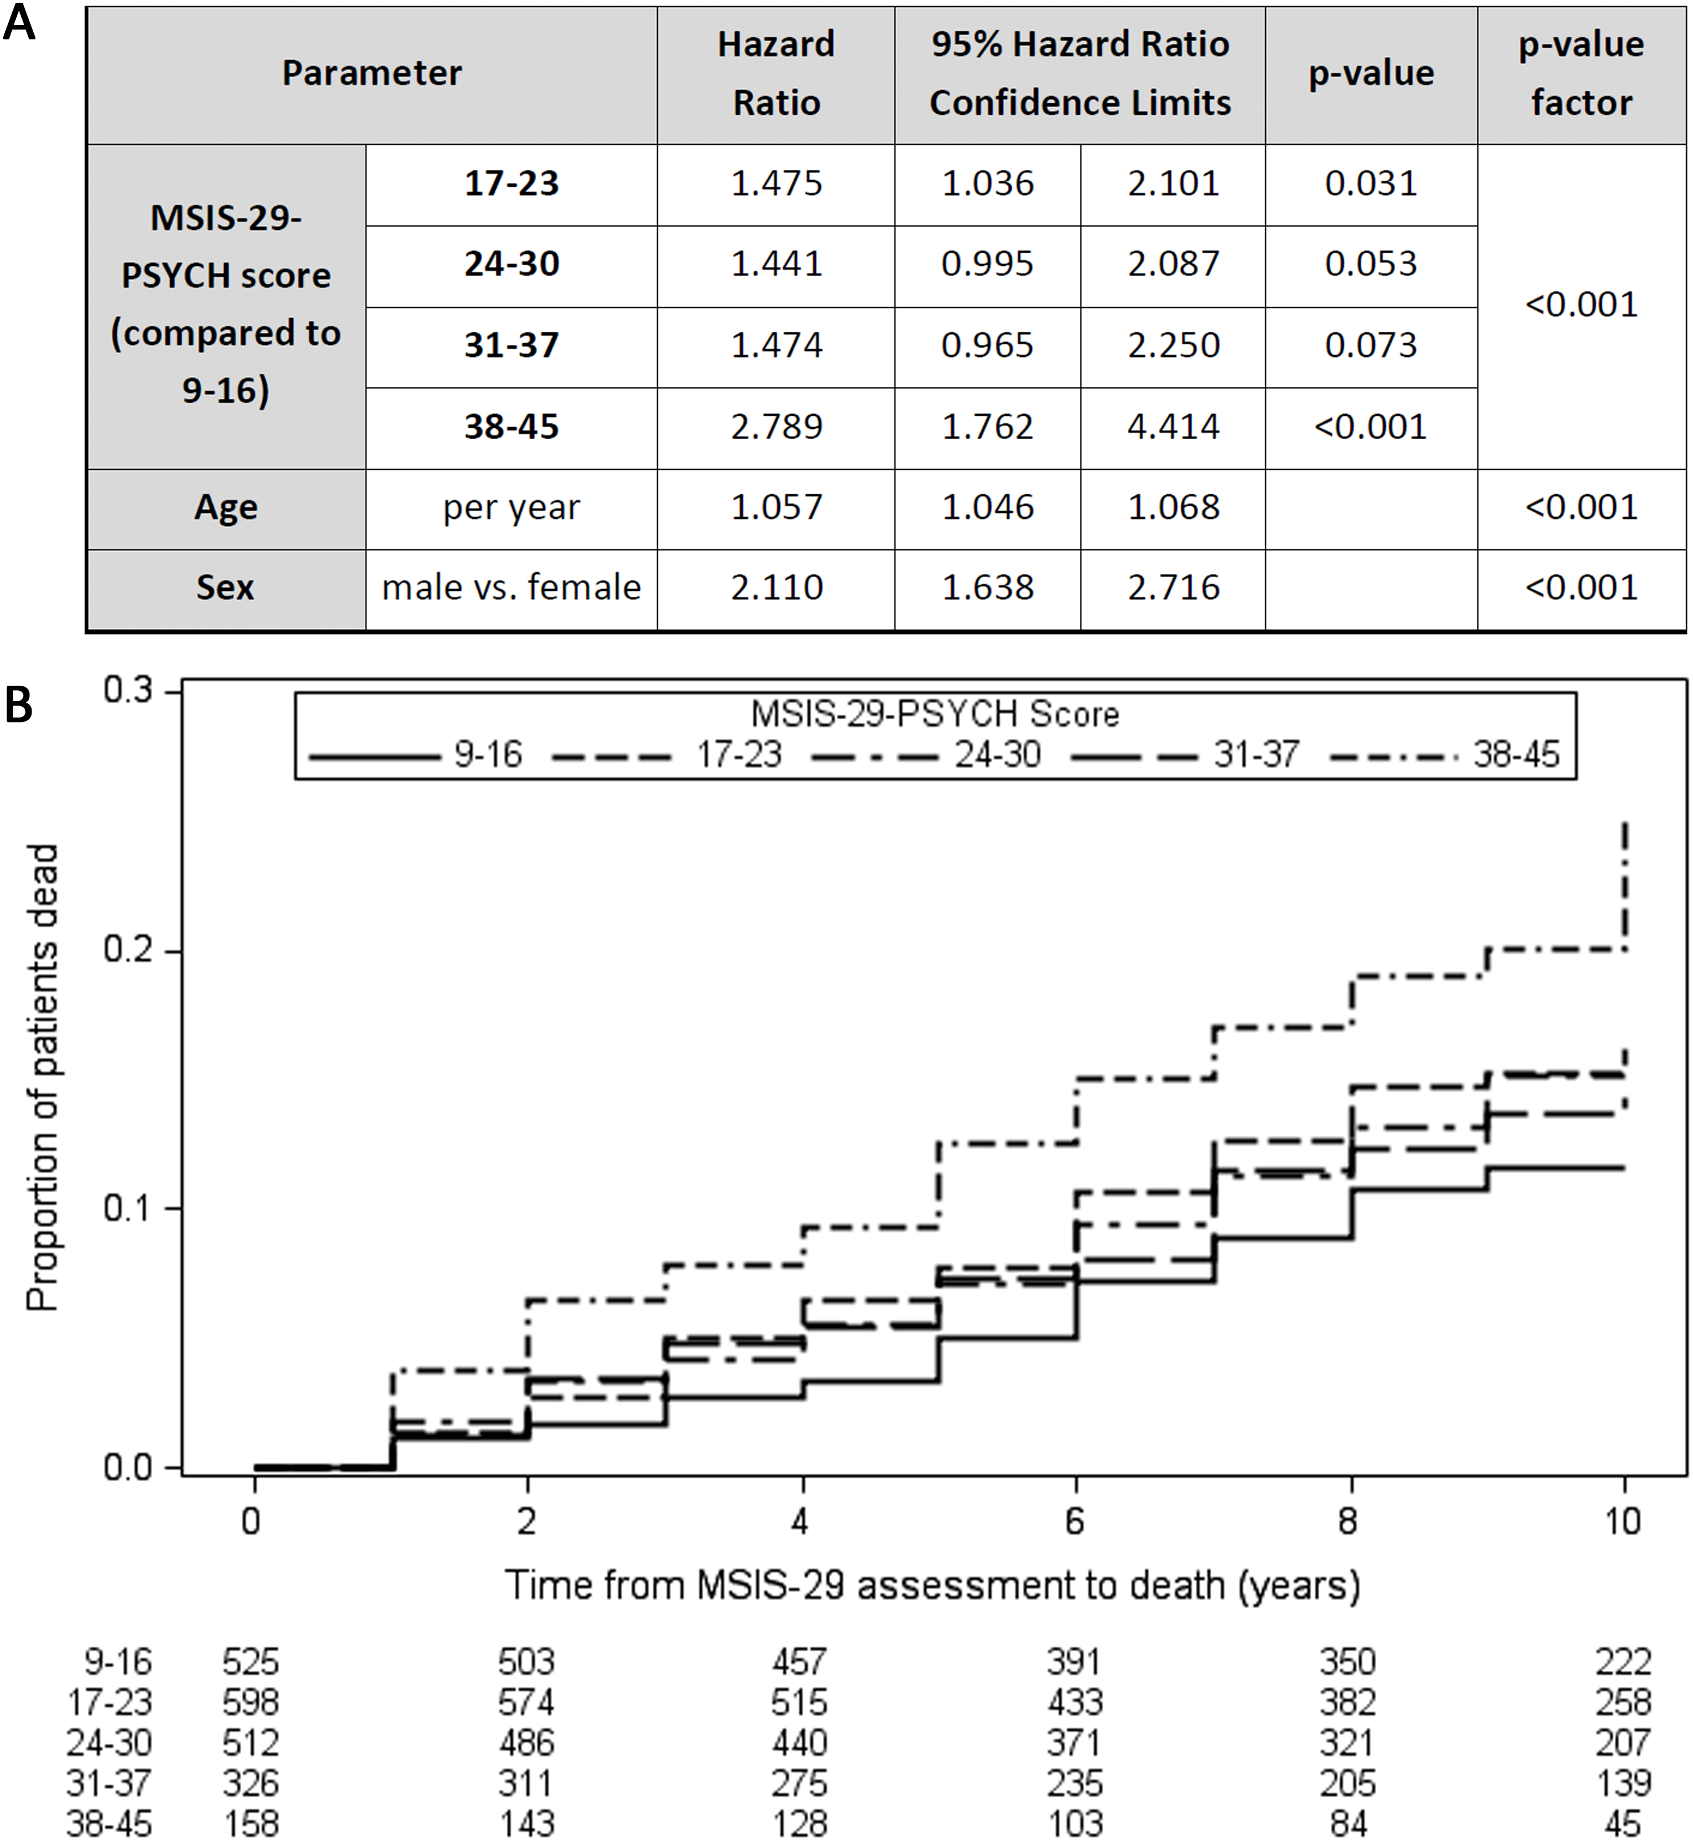 Higher MSIS-29-PSYCH scores are associated with reduced survival time.